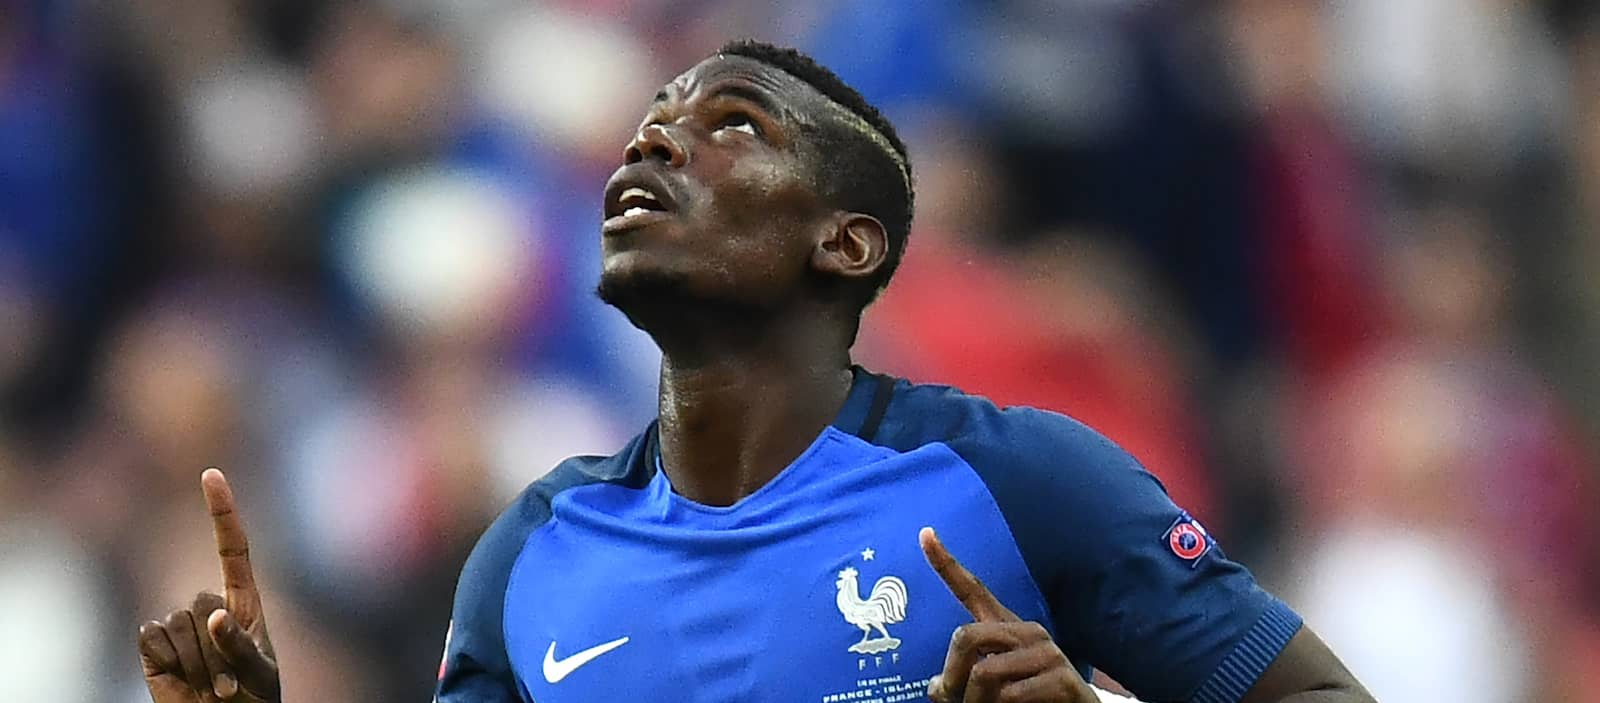 Phil Neville: Manchester United should pay £100million to buy Paul Pogba